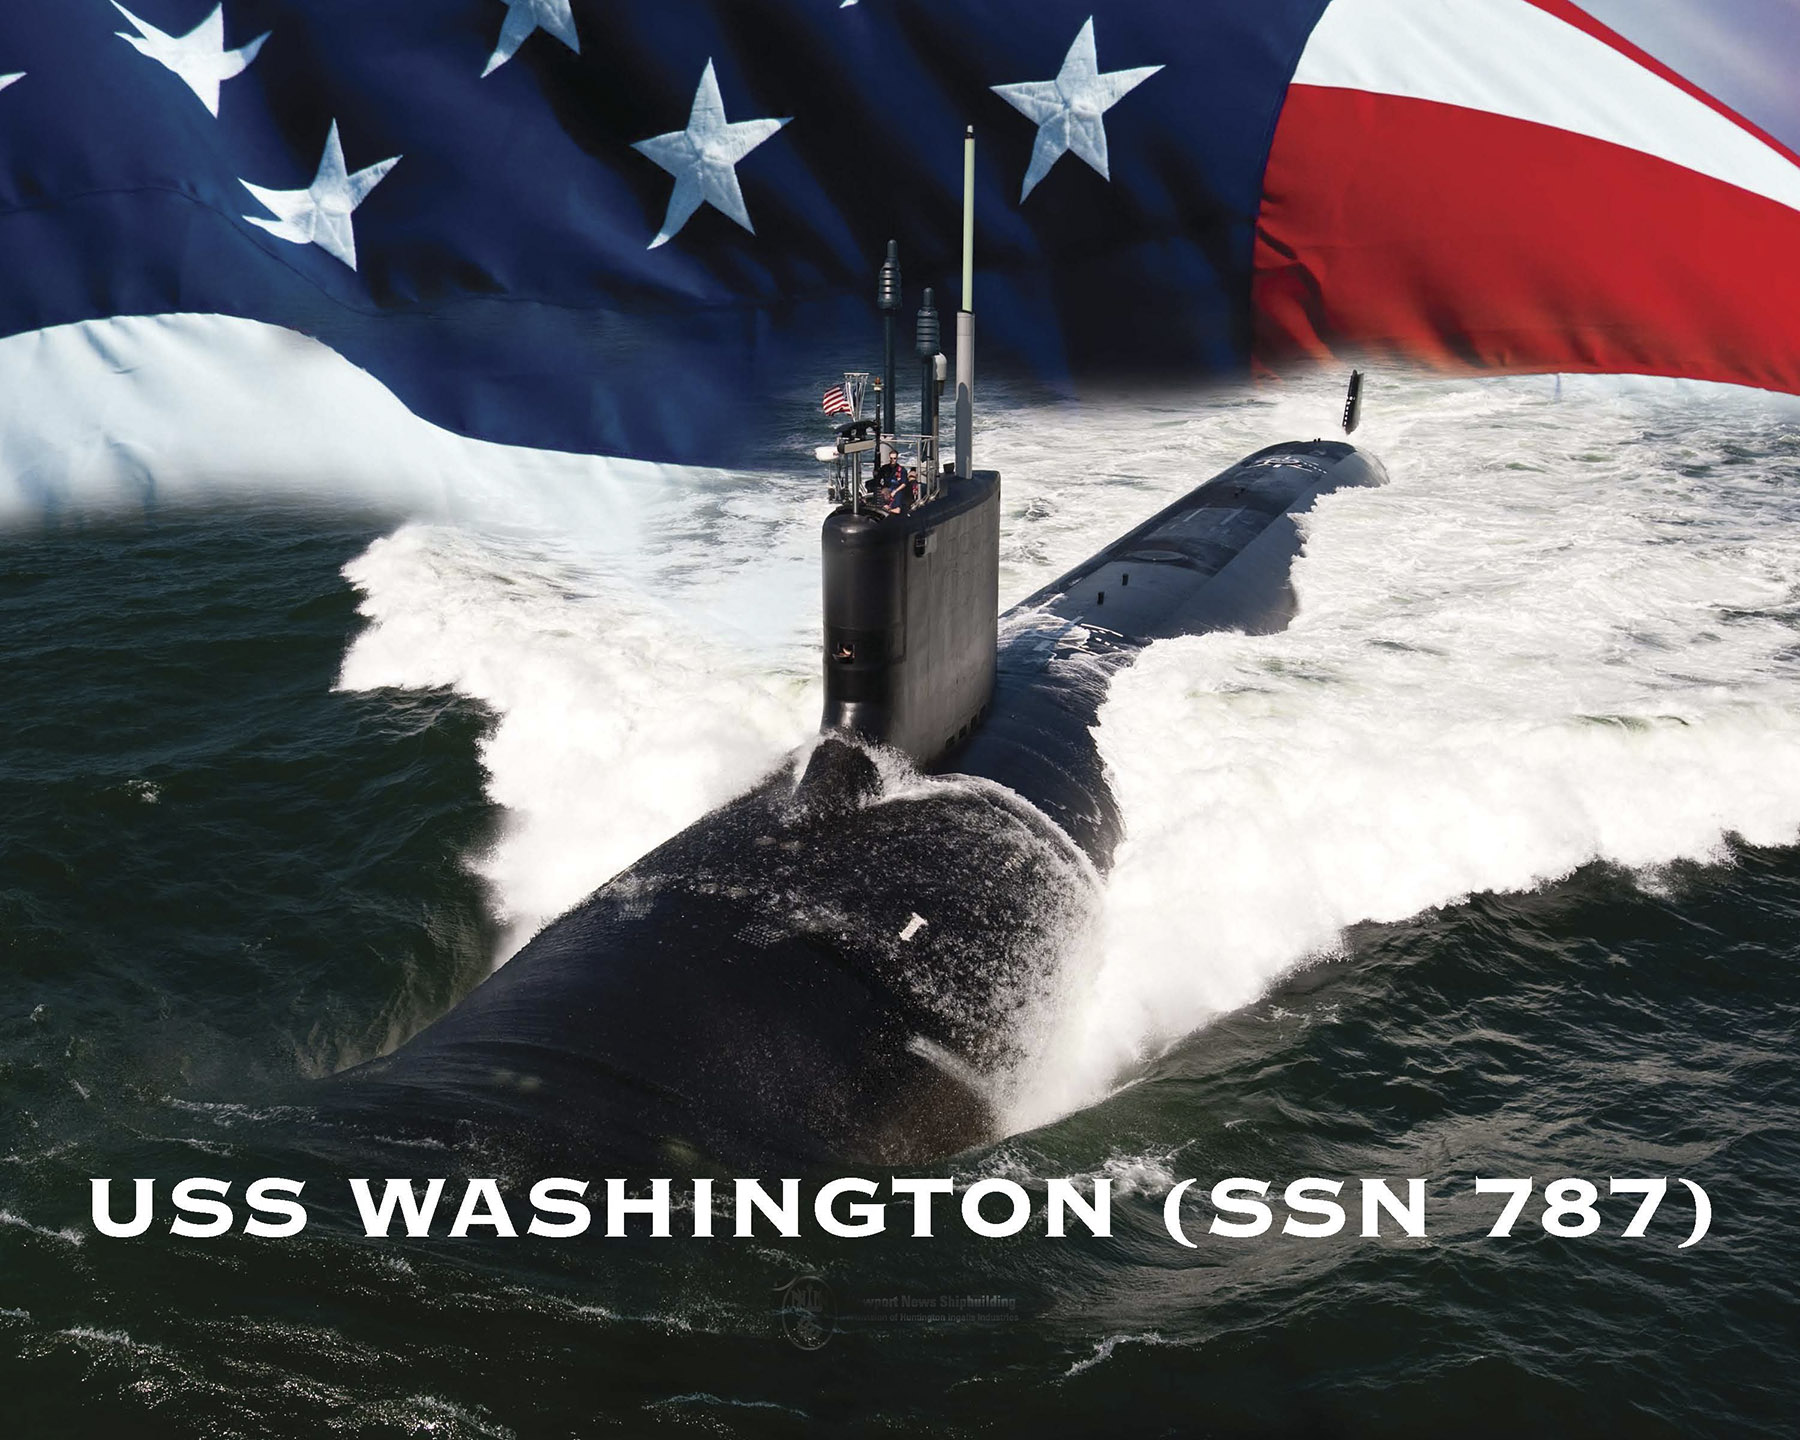 USS WASHINGTON SSN-787 Grafik: U.S. Navy